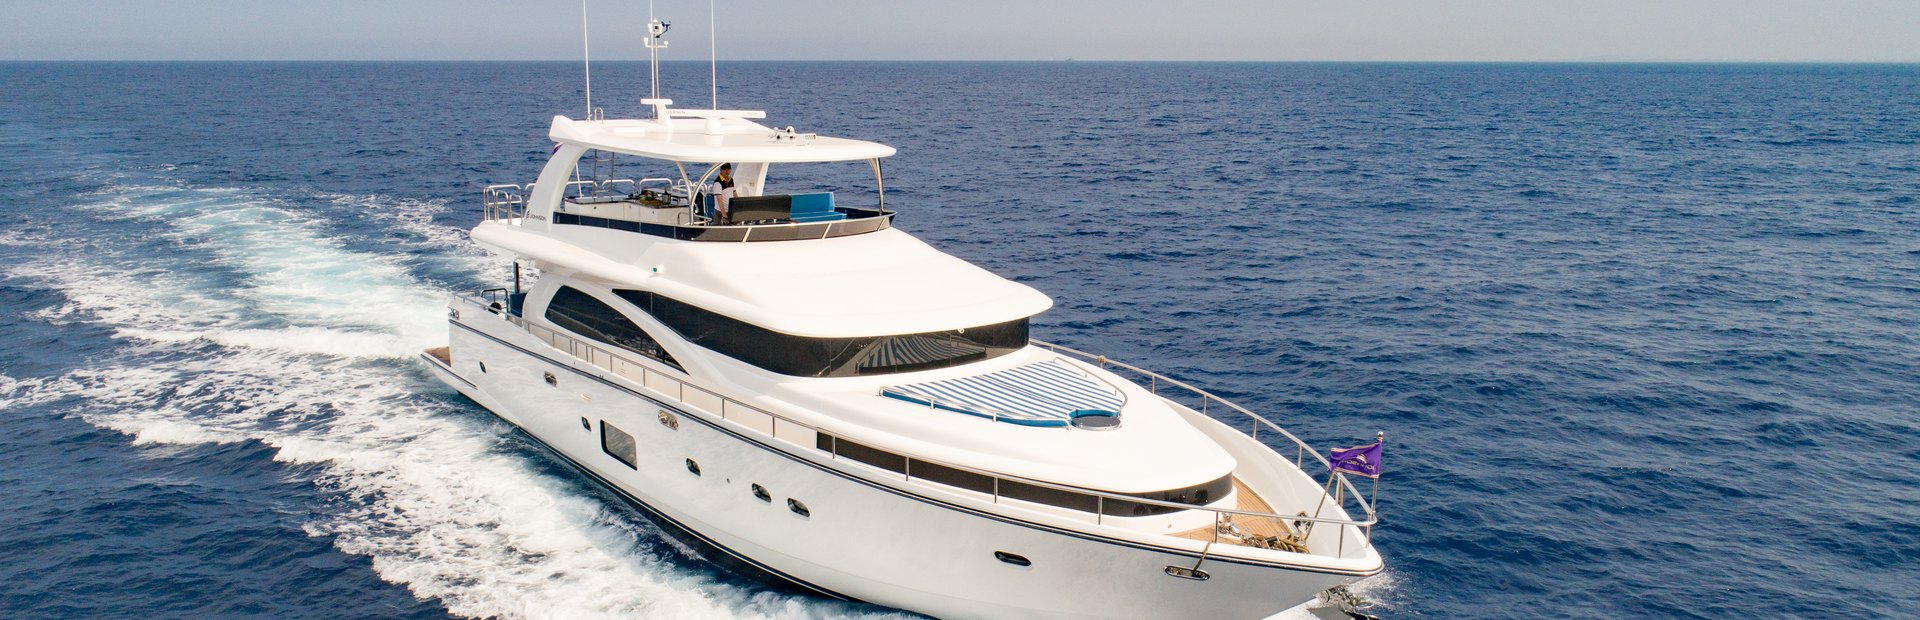 Johnson 80 Yacht Charter